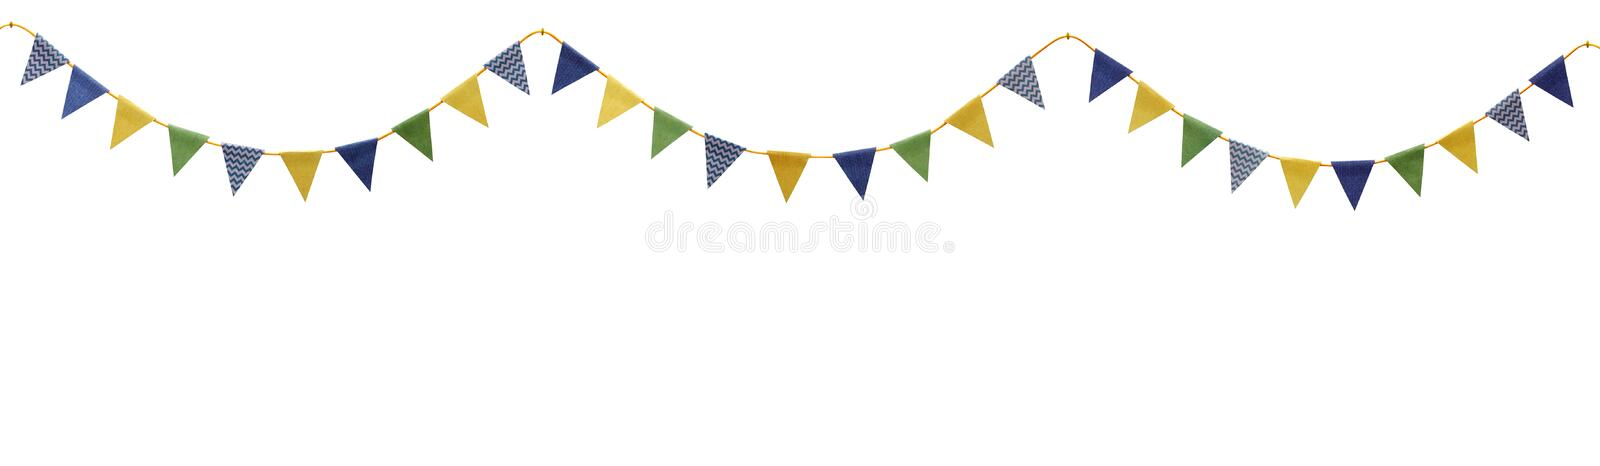 Bunting party flags made from scrap booking paper. Isolated on white royalty free stock photo